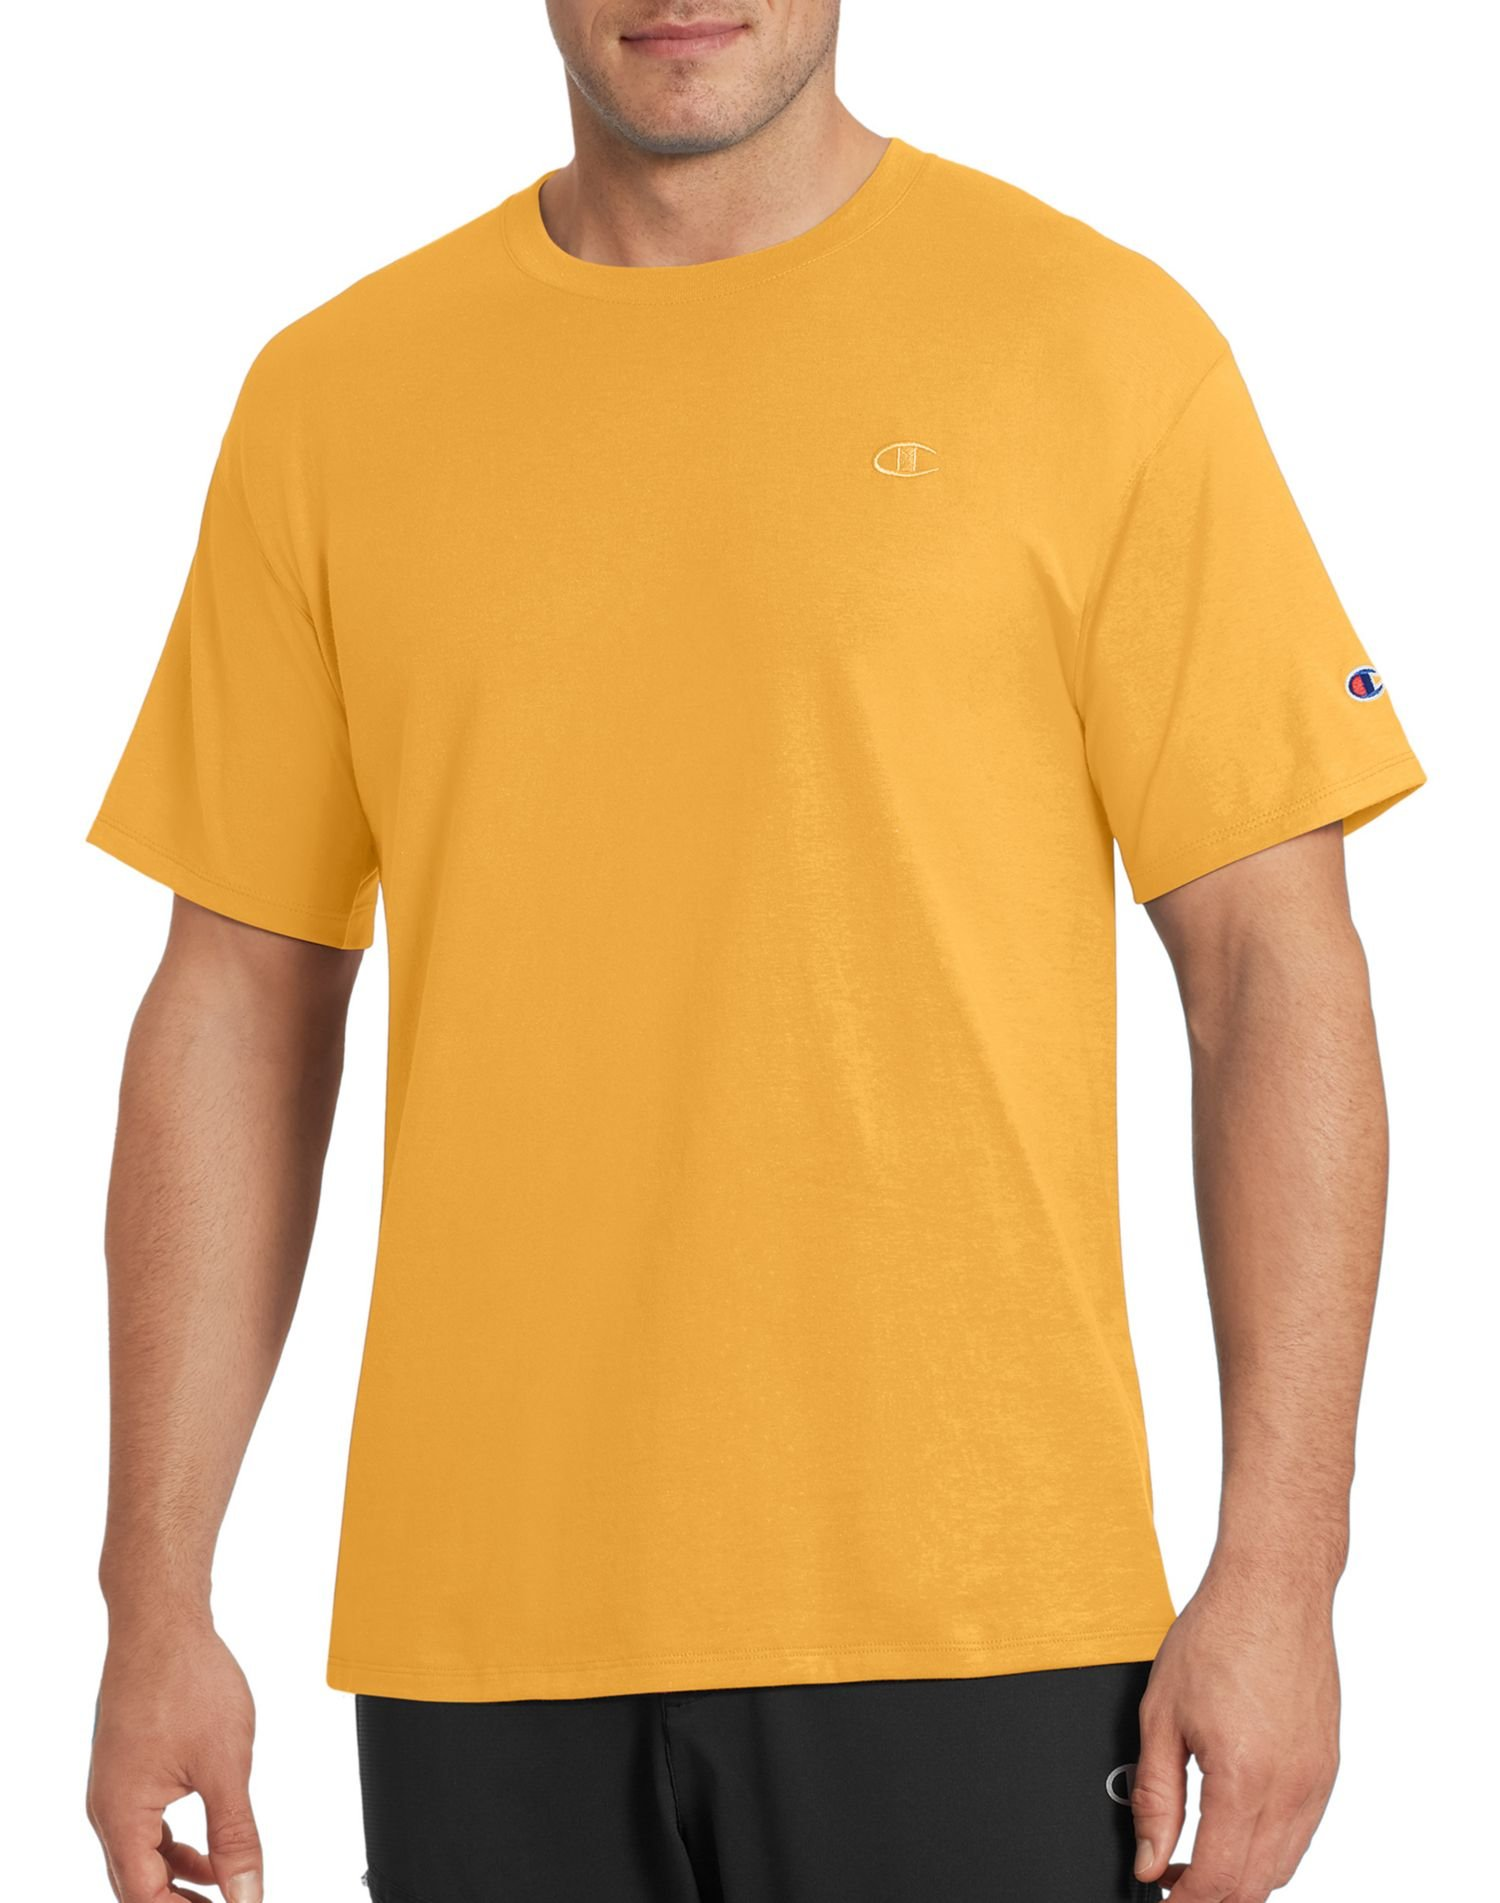 Champion Men's Classic Jersey T-Shirt, Team Gold, 4X Large by Champion